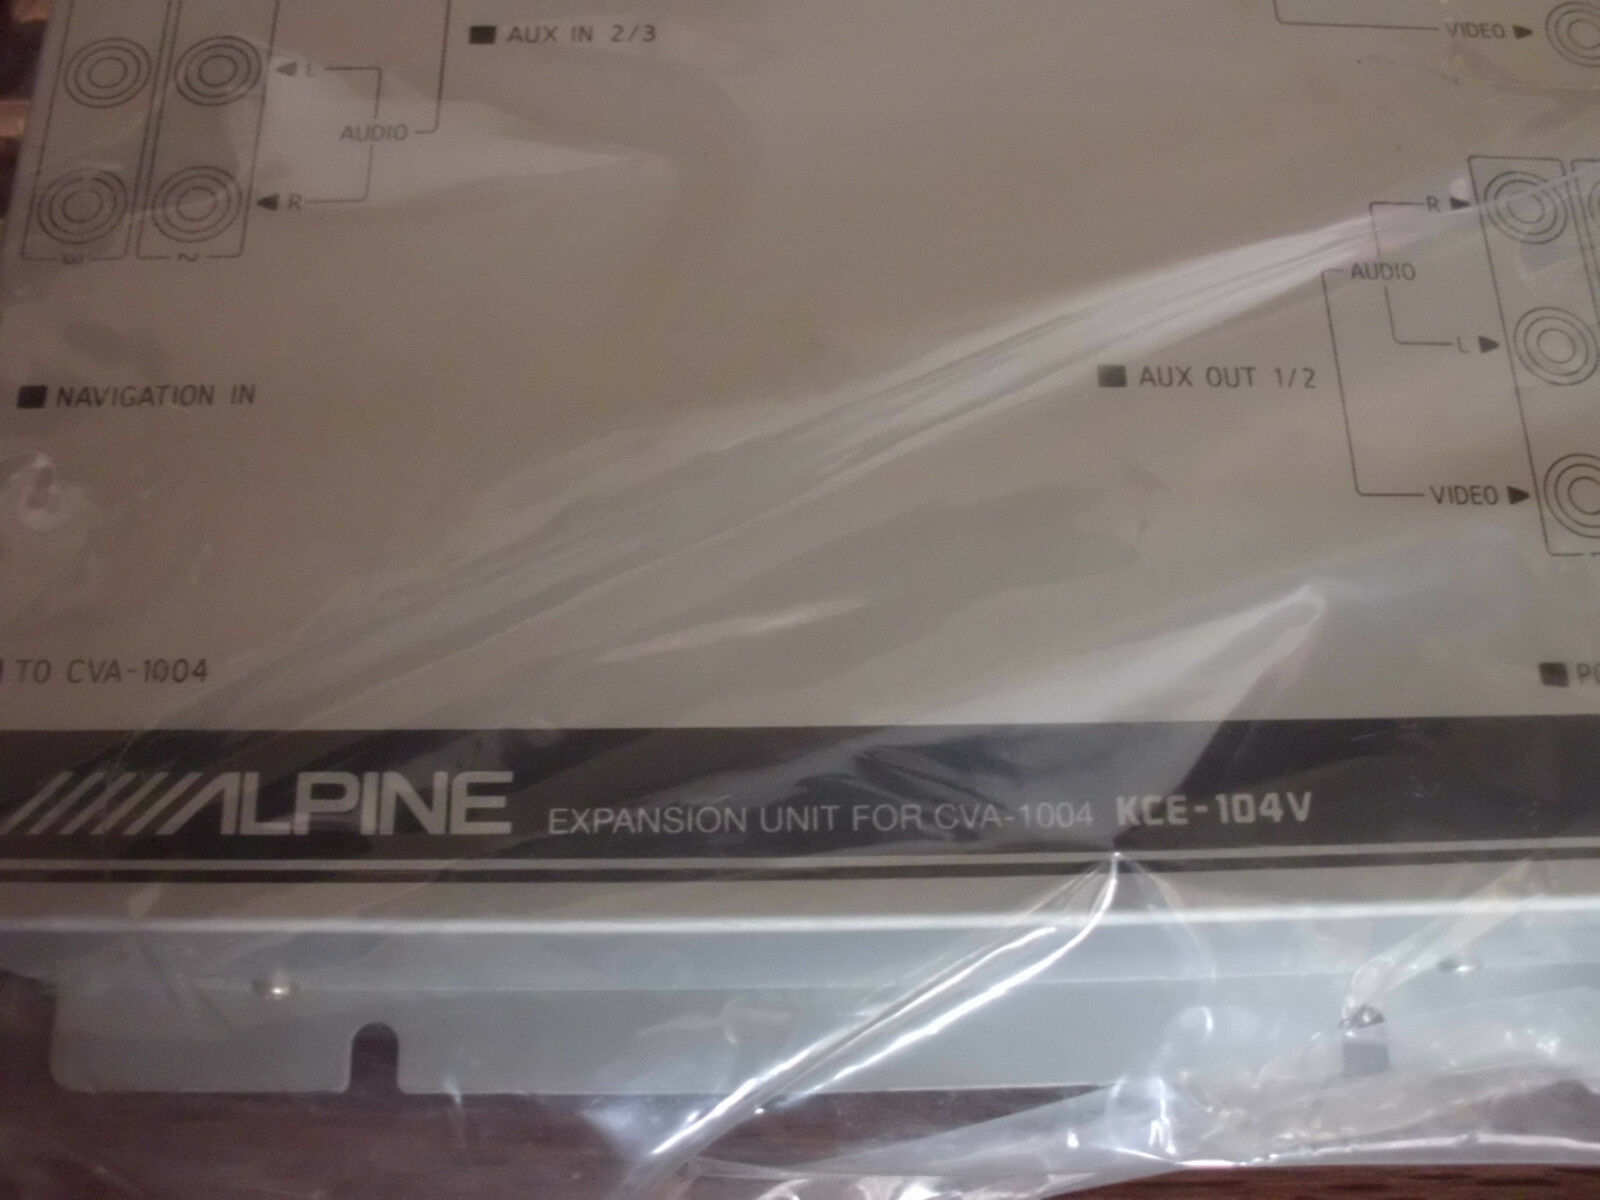 Alpine Kce 104v Input Output Expansion Unit For Cva 1004 Ebay 1005 Wiring Diagram Norton Secured Powered By Verisign